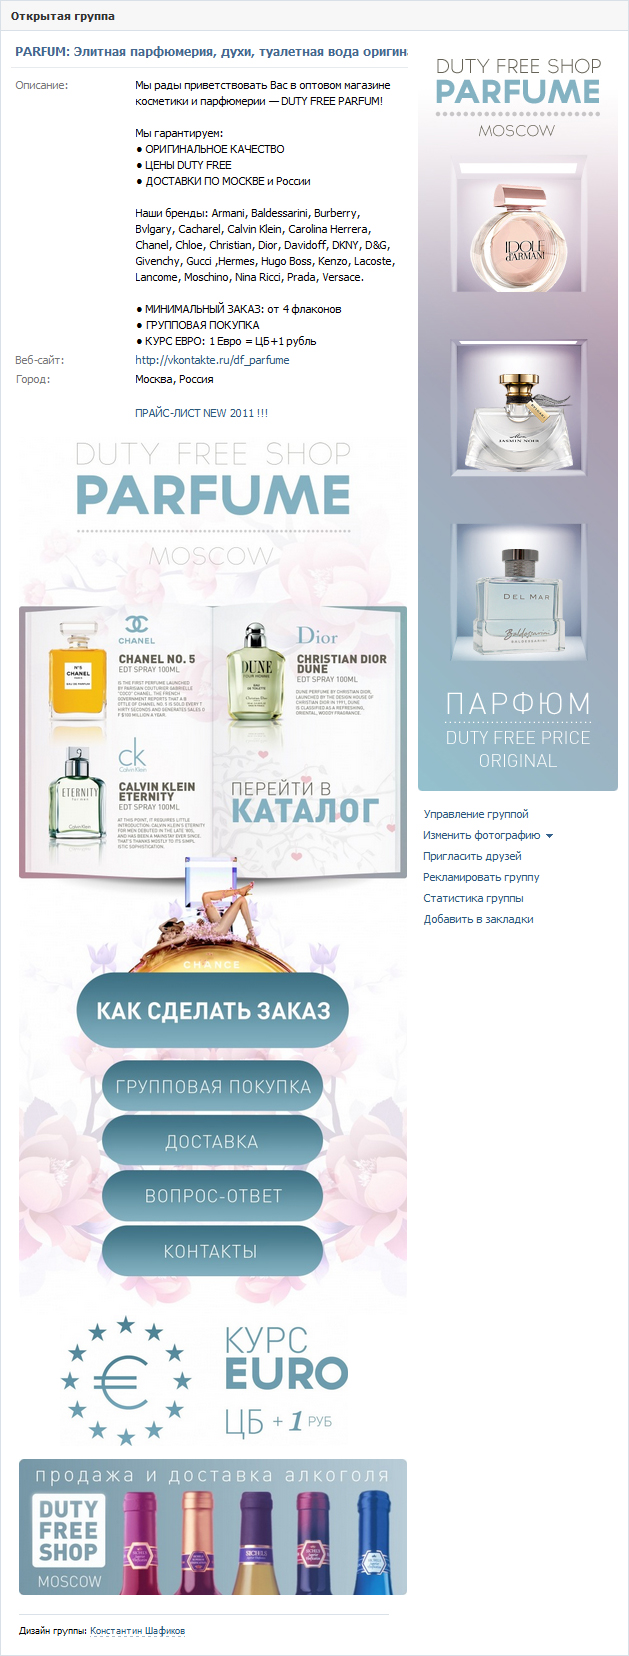 VK — Parfum Duty Free Shop, Москва